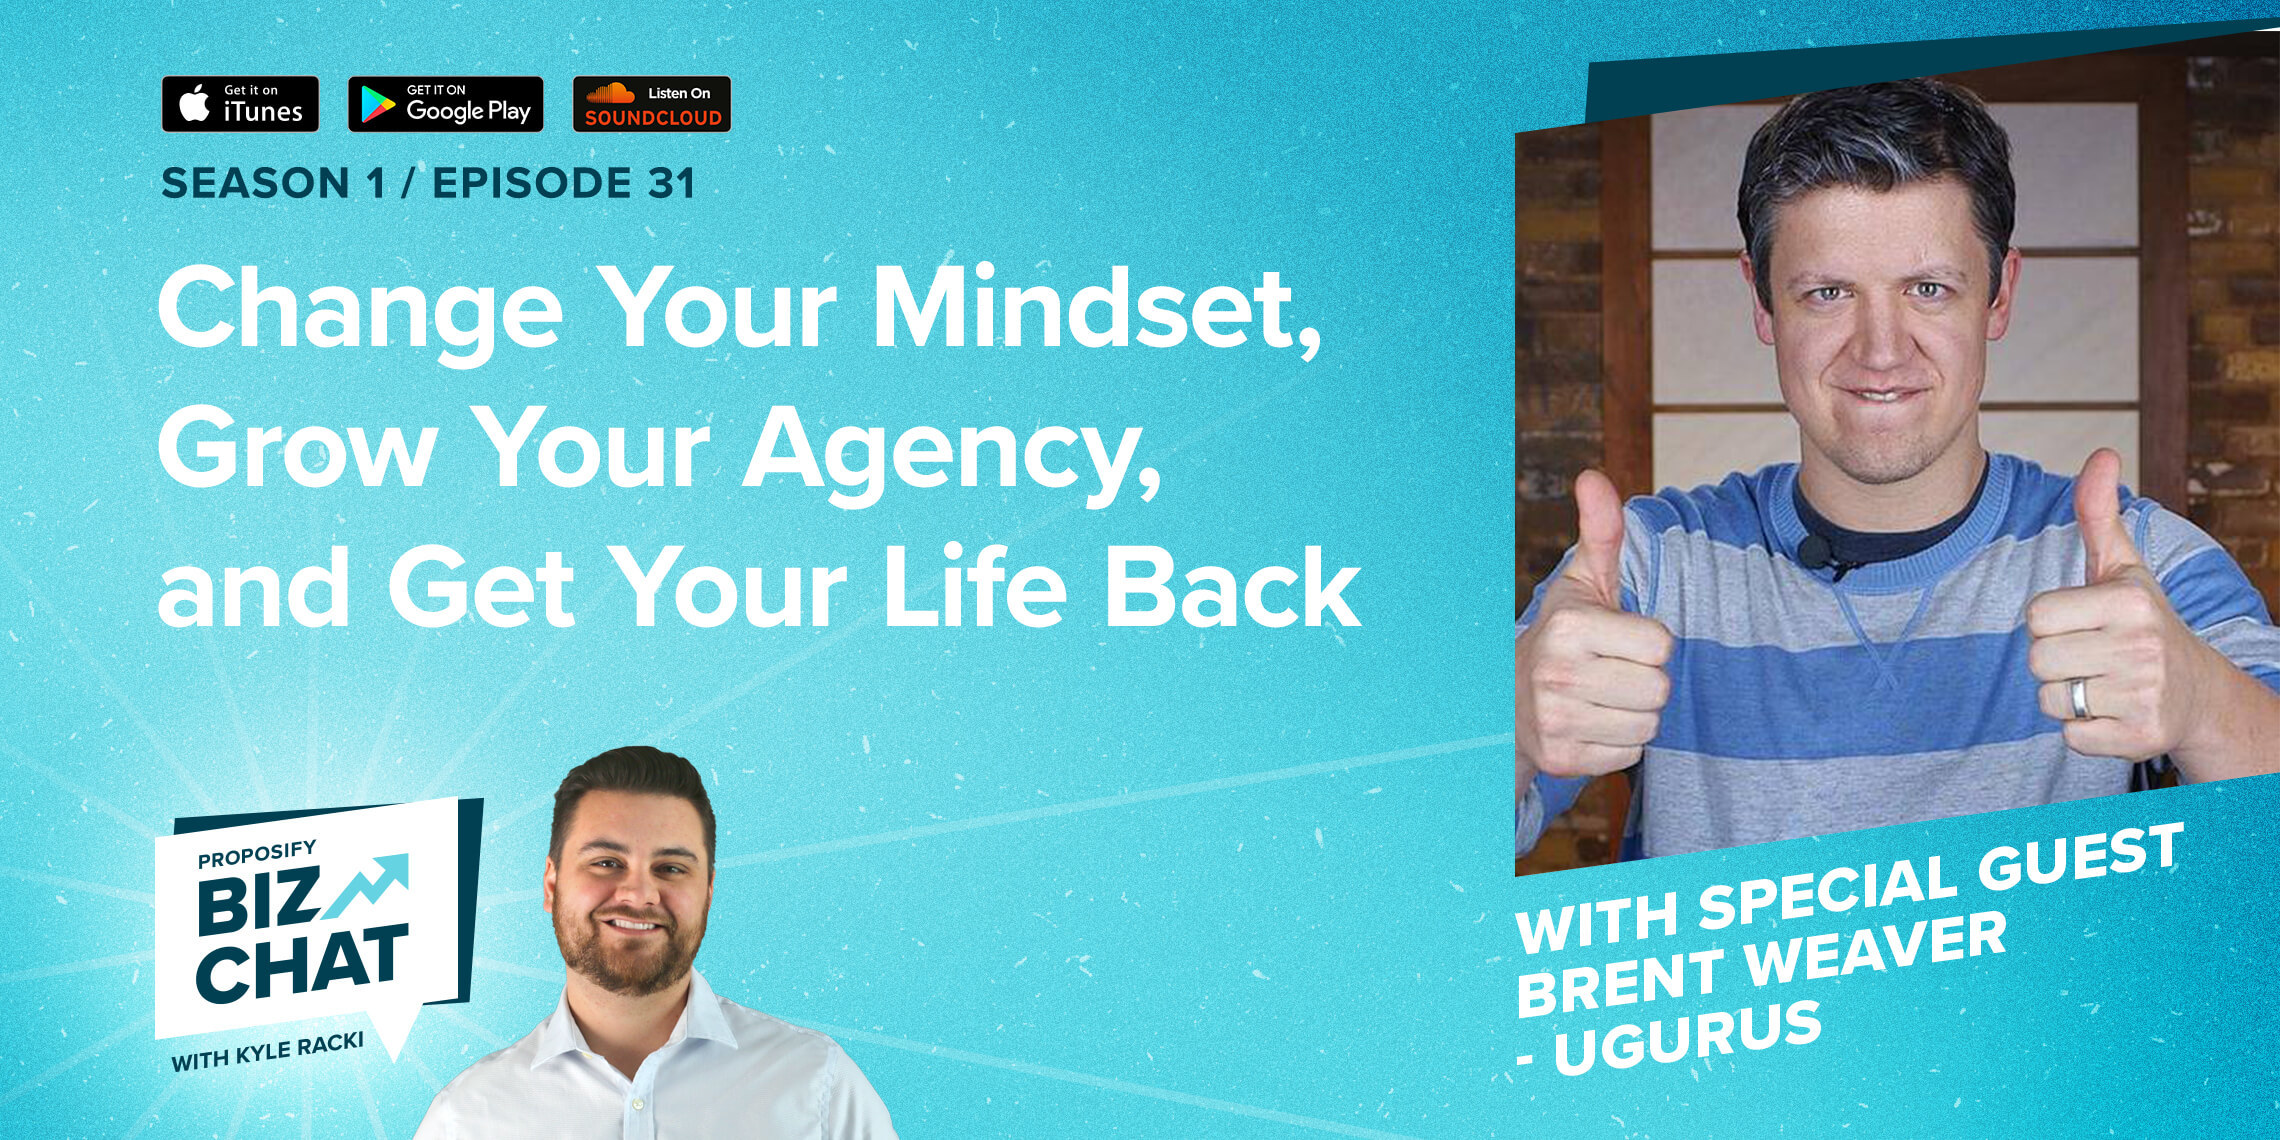 Change Your Mindset, Grow Your Agency, and Get Your Life Back